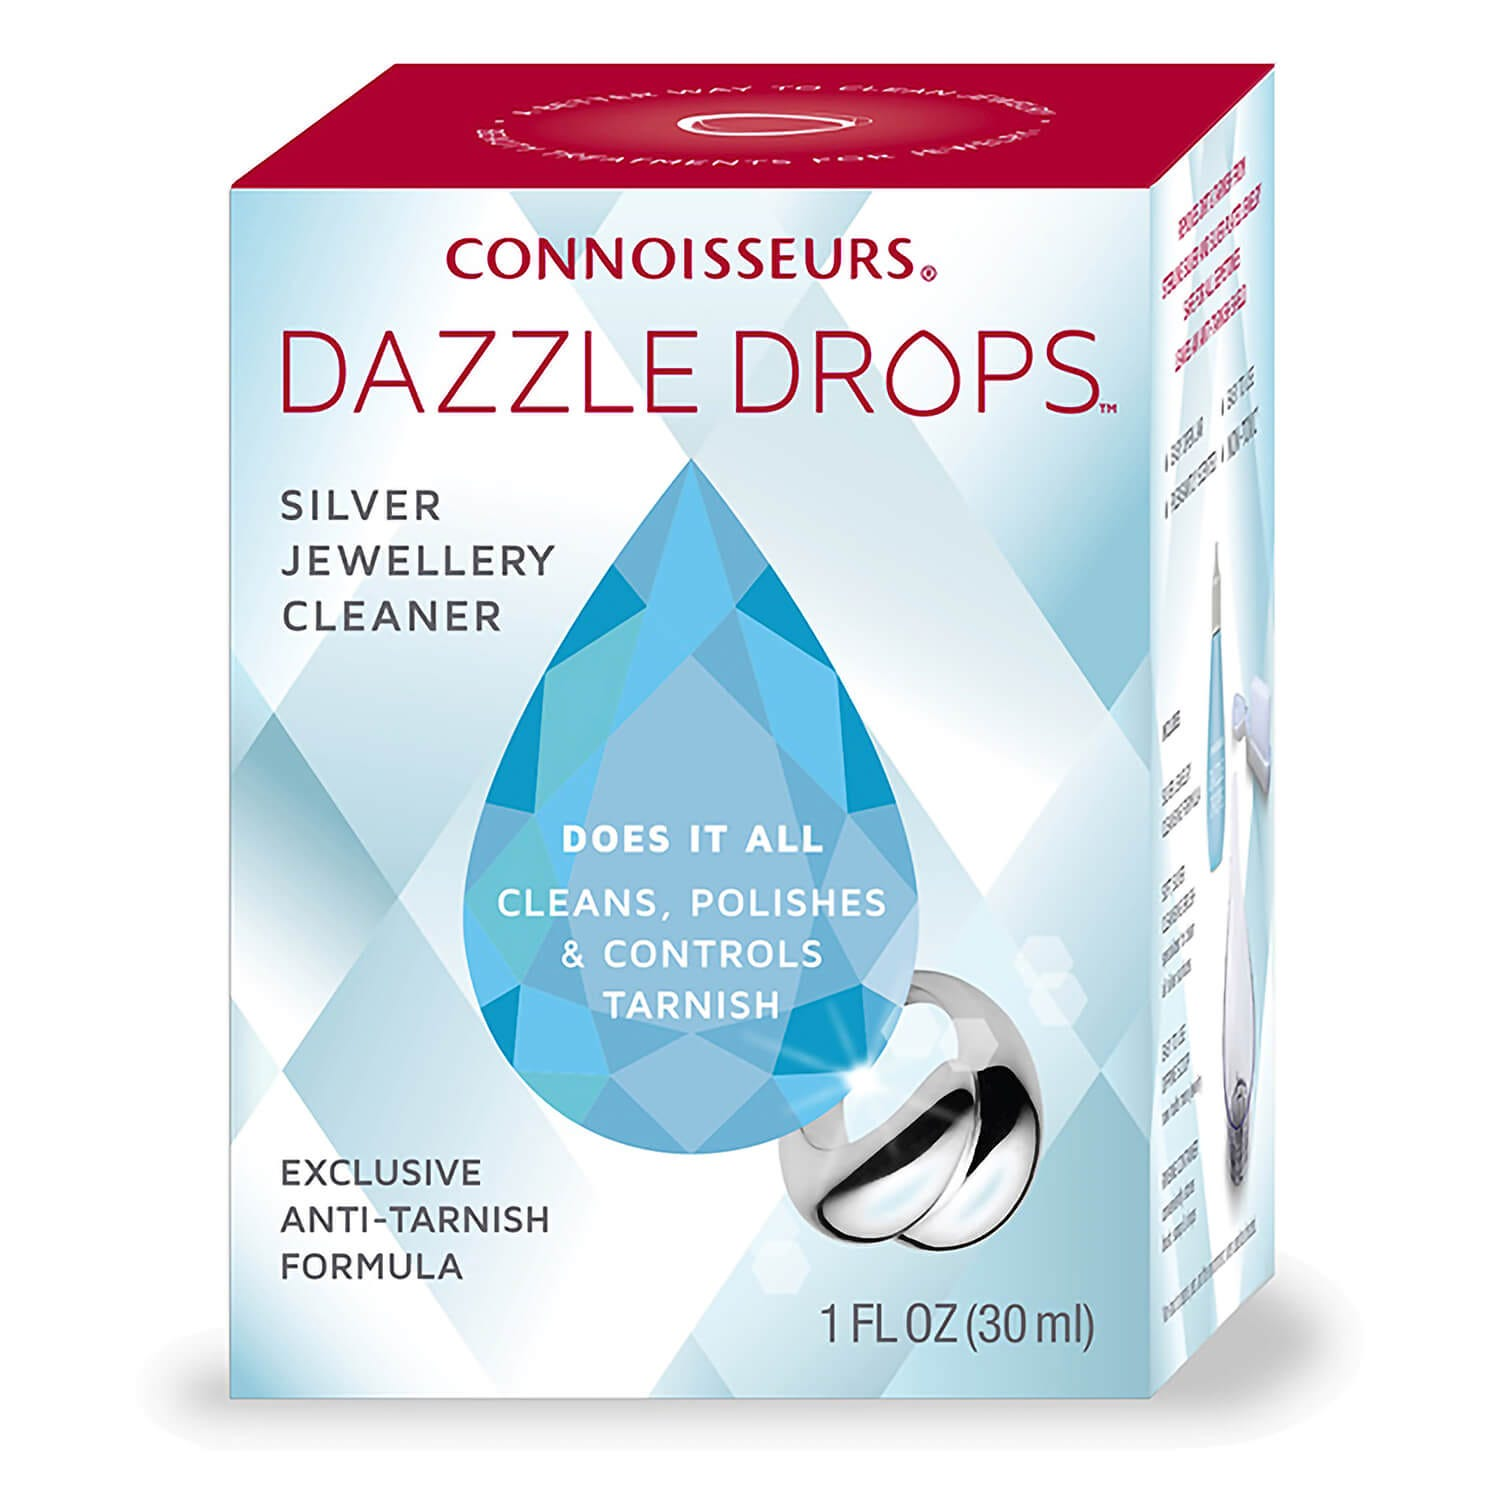 Connoisseurs Dazzle Drops Silver Jewellery Cleaner